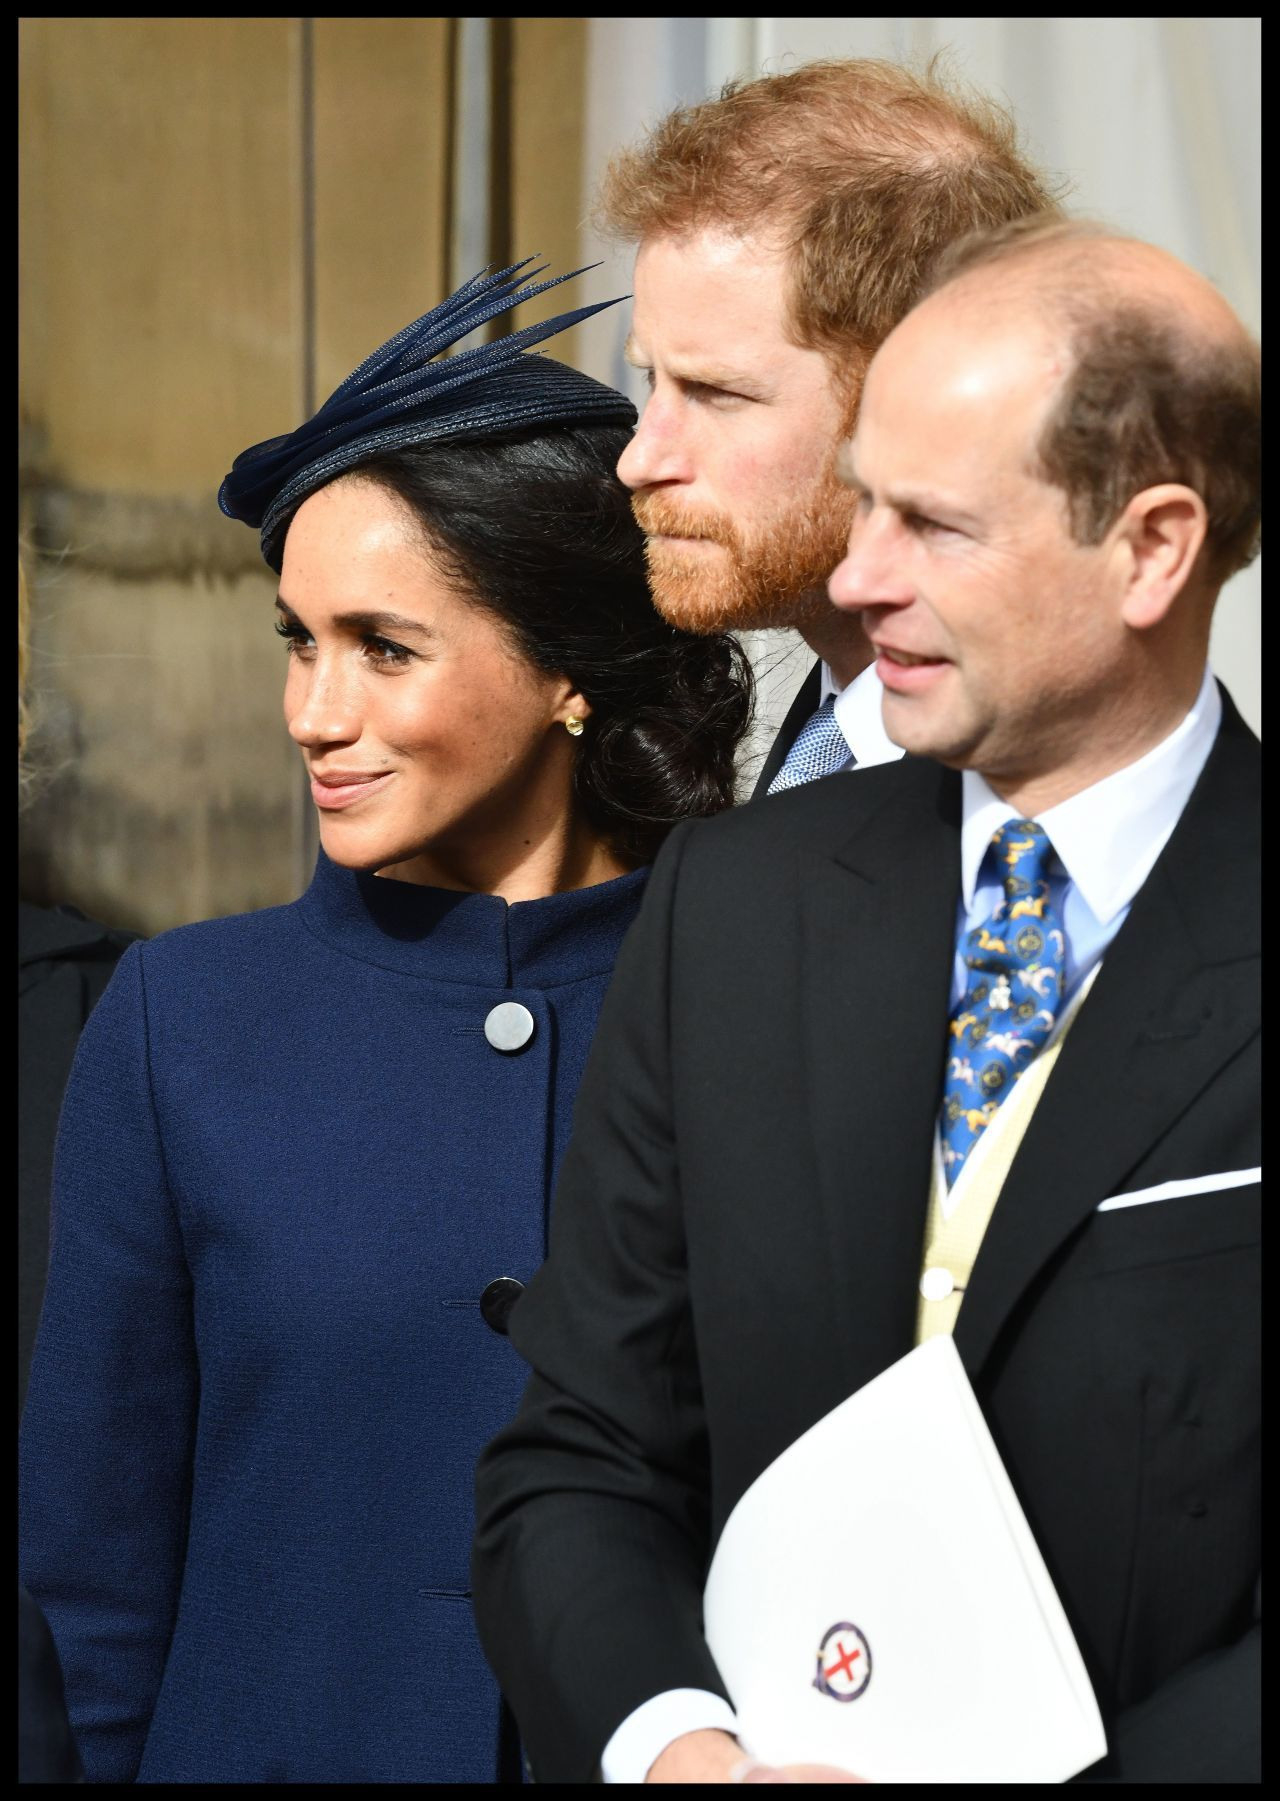 Meghan-Markle-And-Prince-Harry-At-The-Wedding-Of-Princess